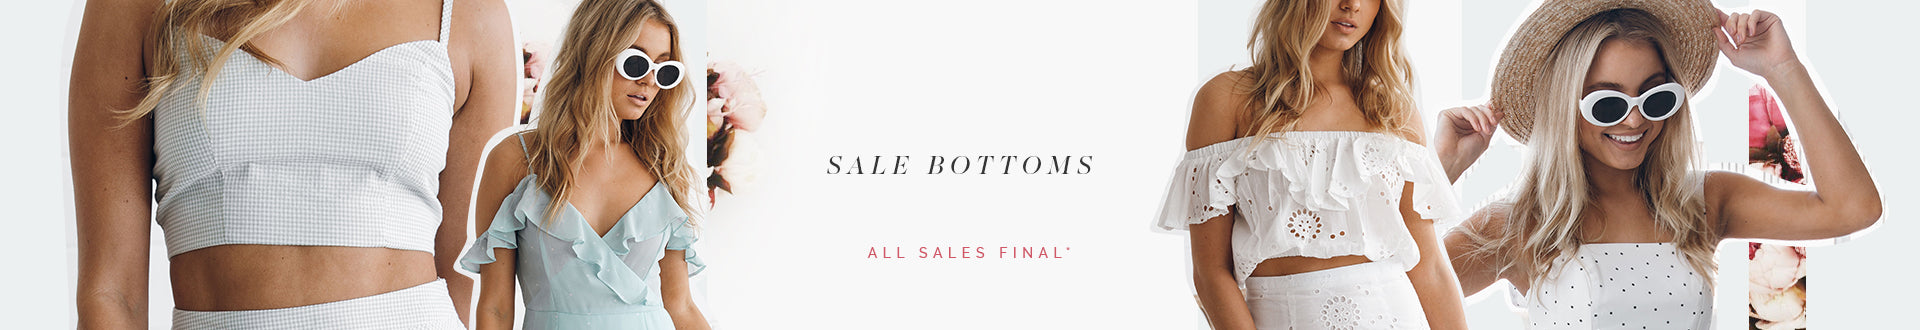 SALE BOTTOMS